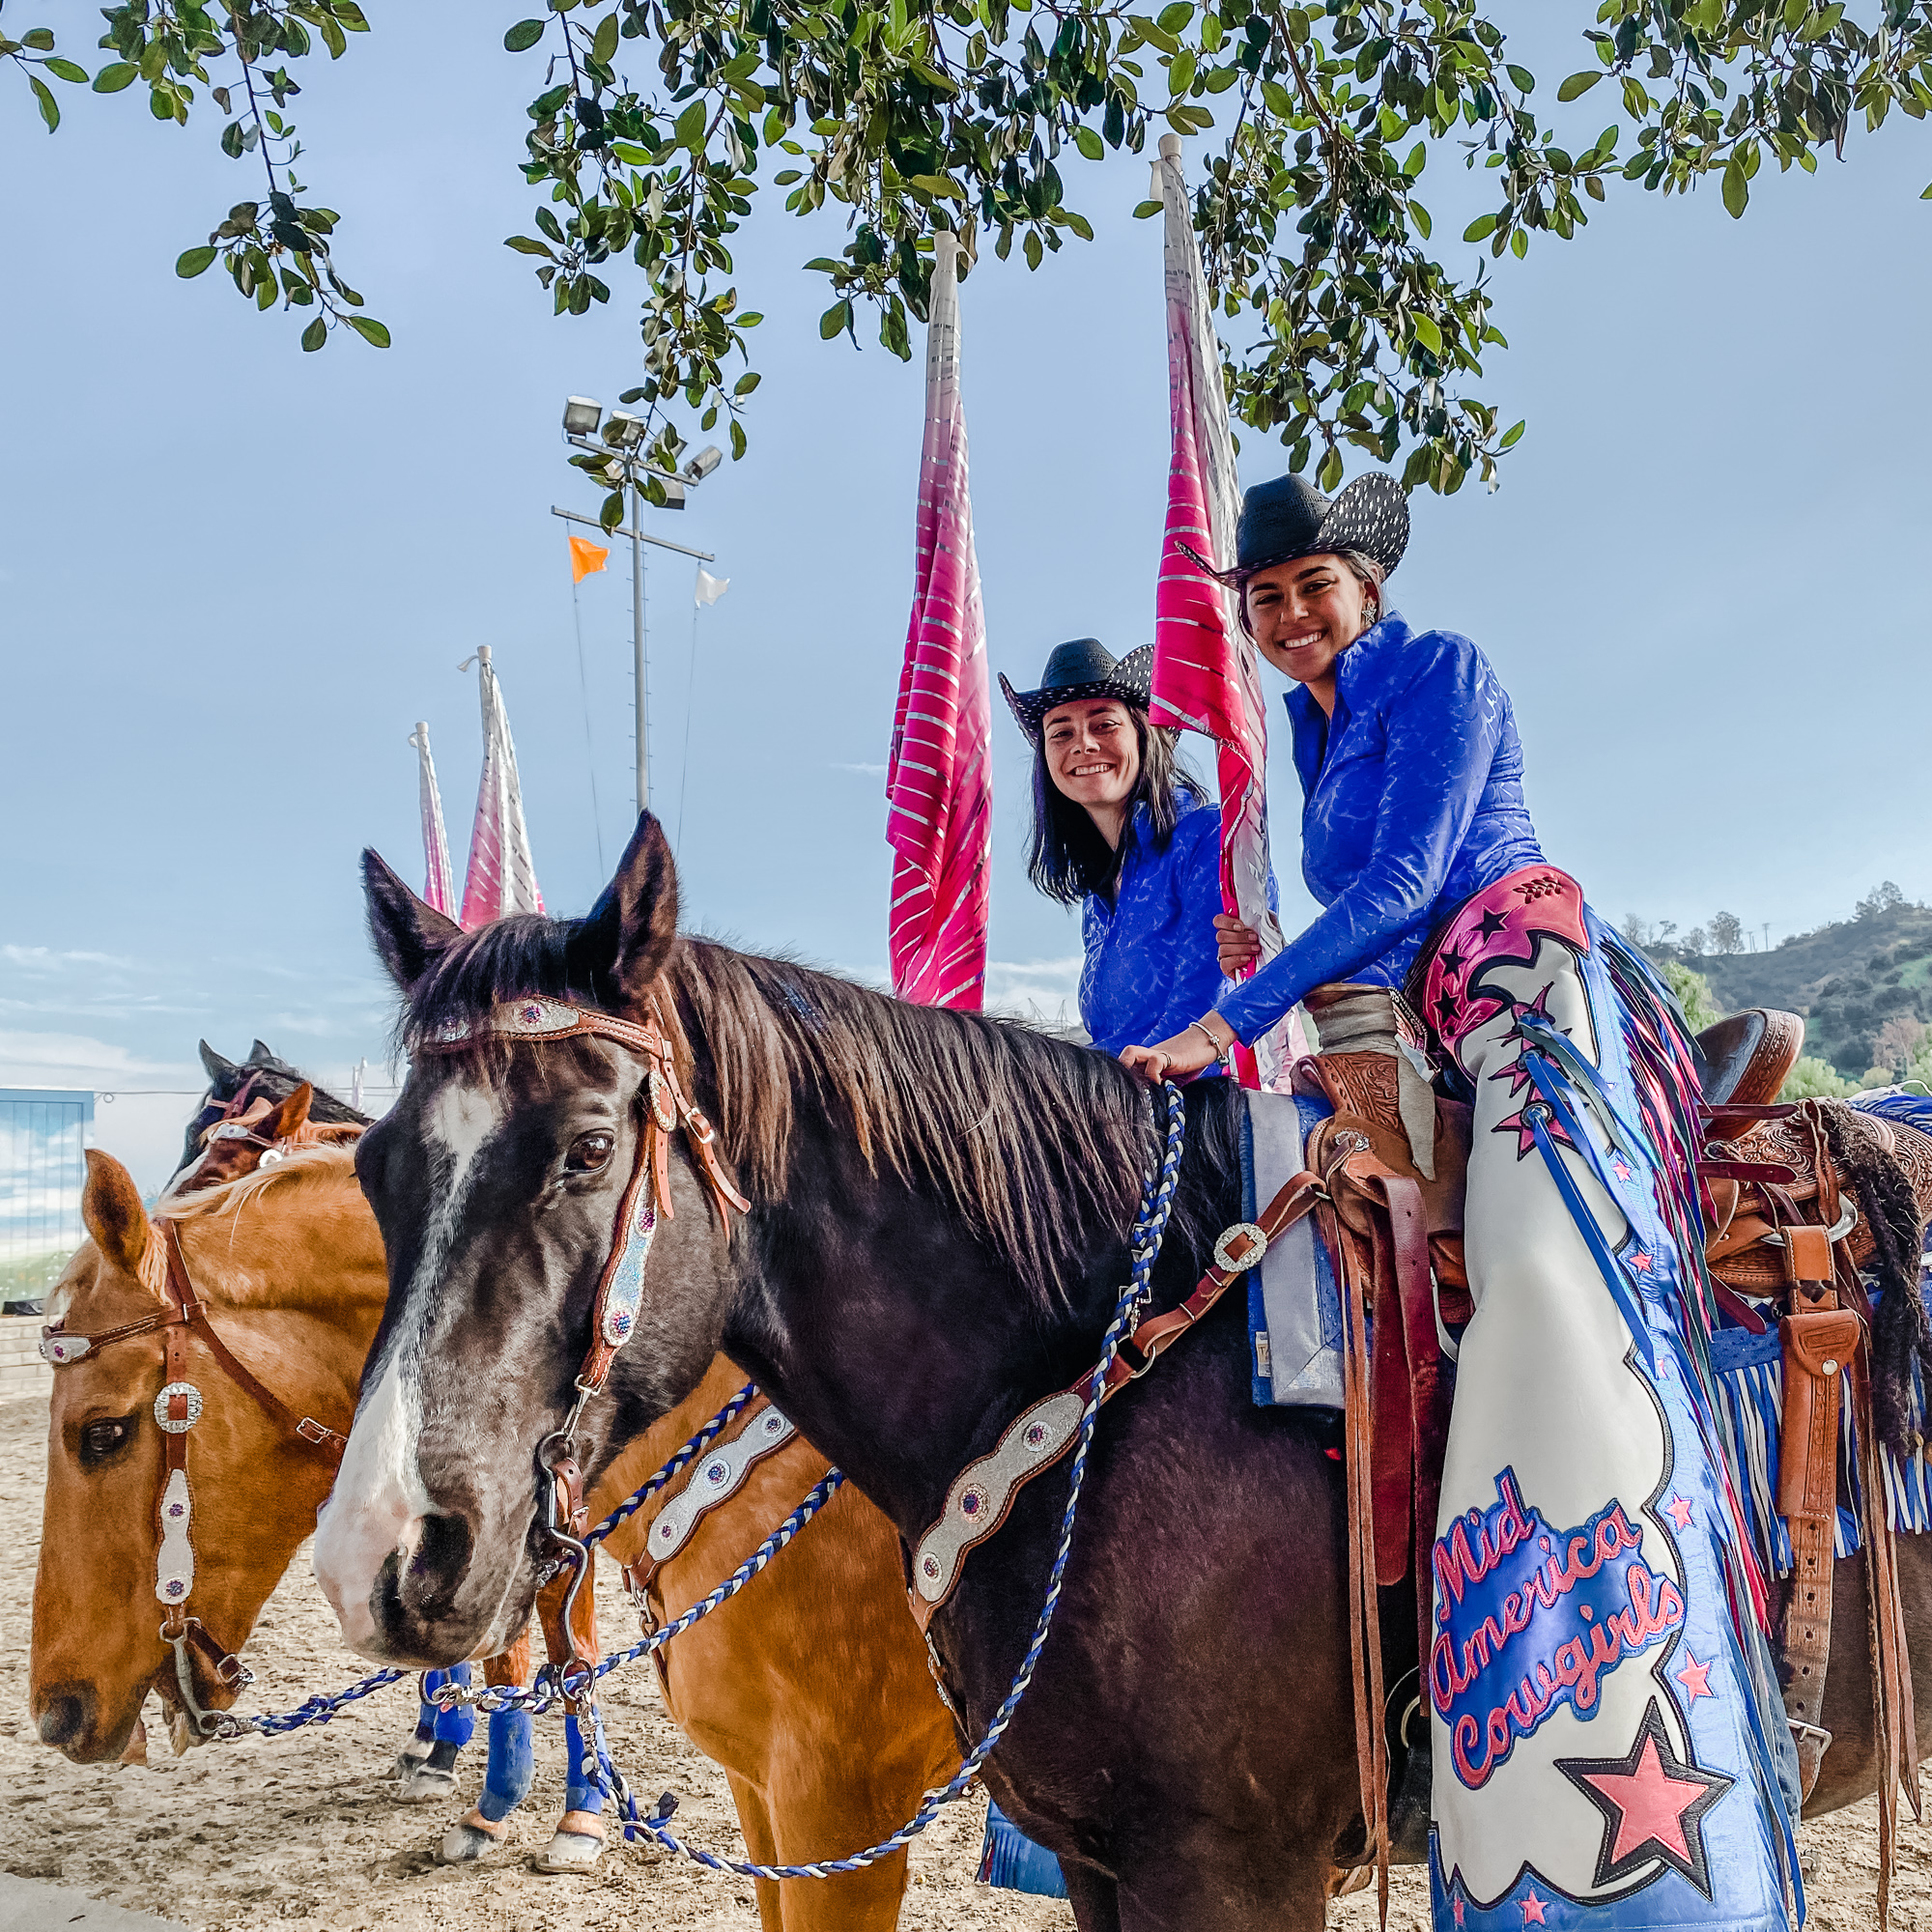 Tournament of Roses EquestFest performers at Los Angeles Equestrian Center